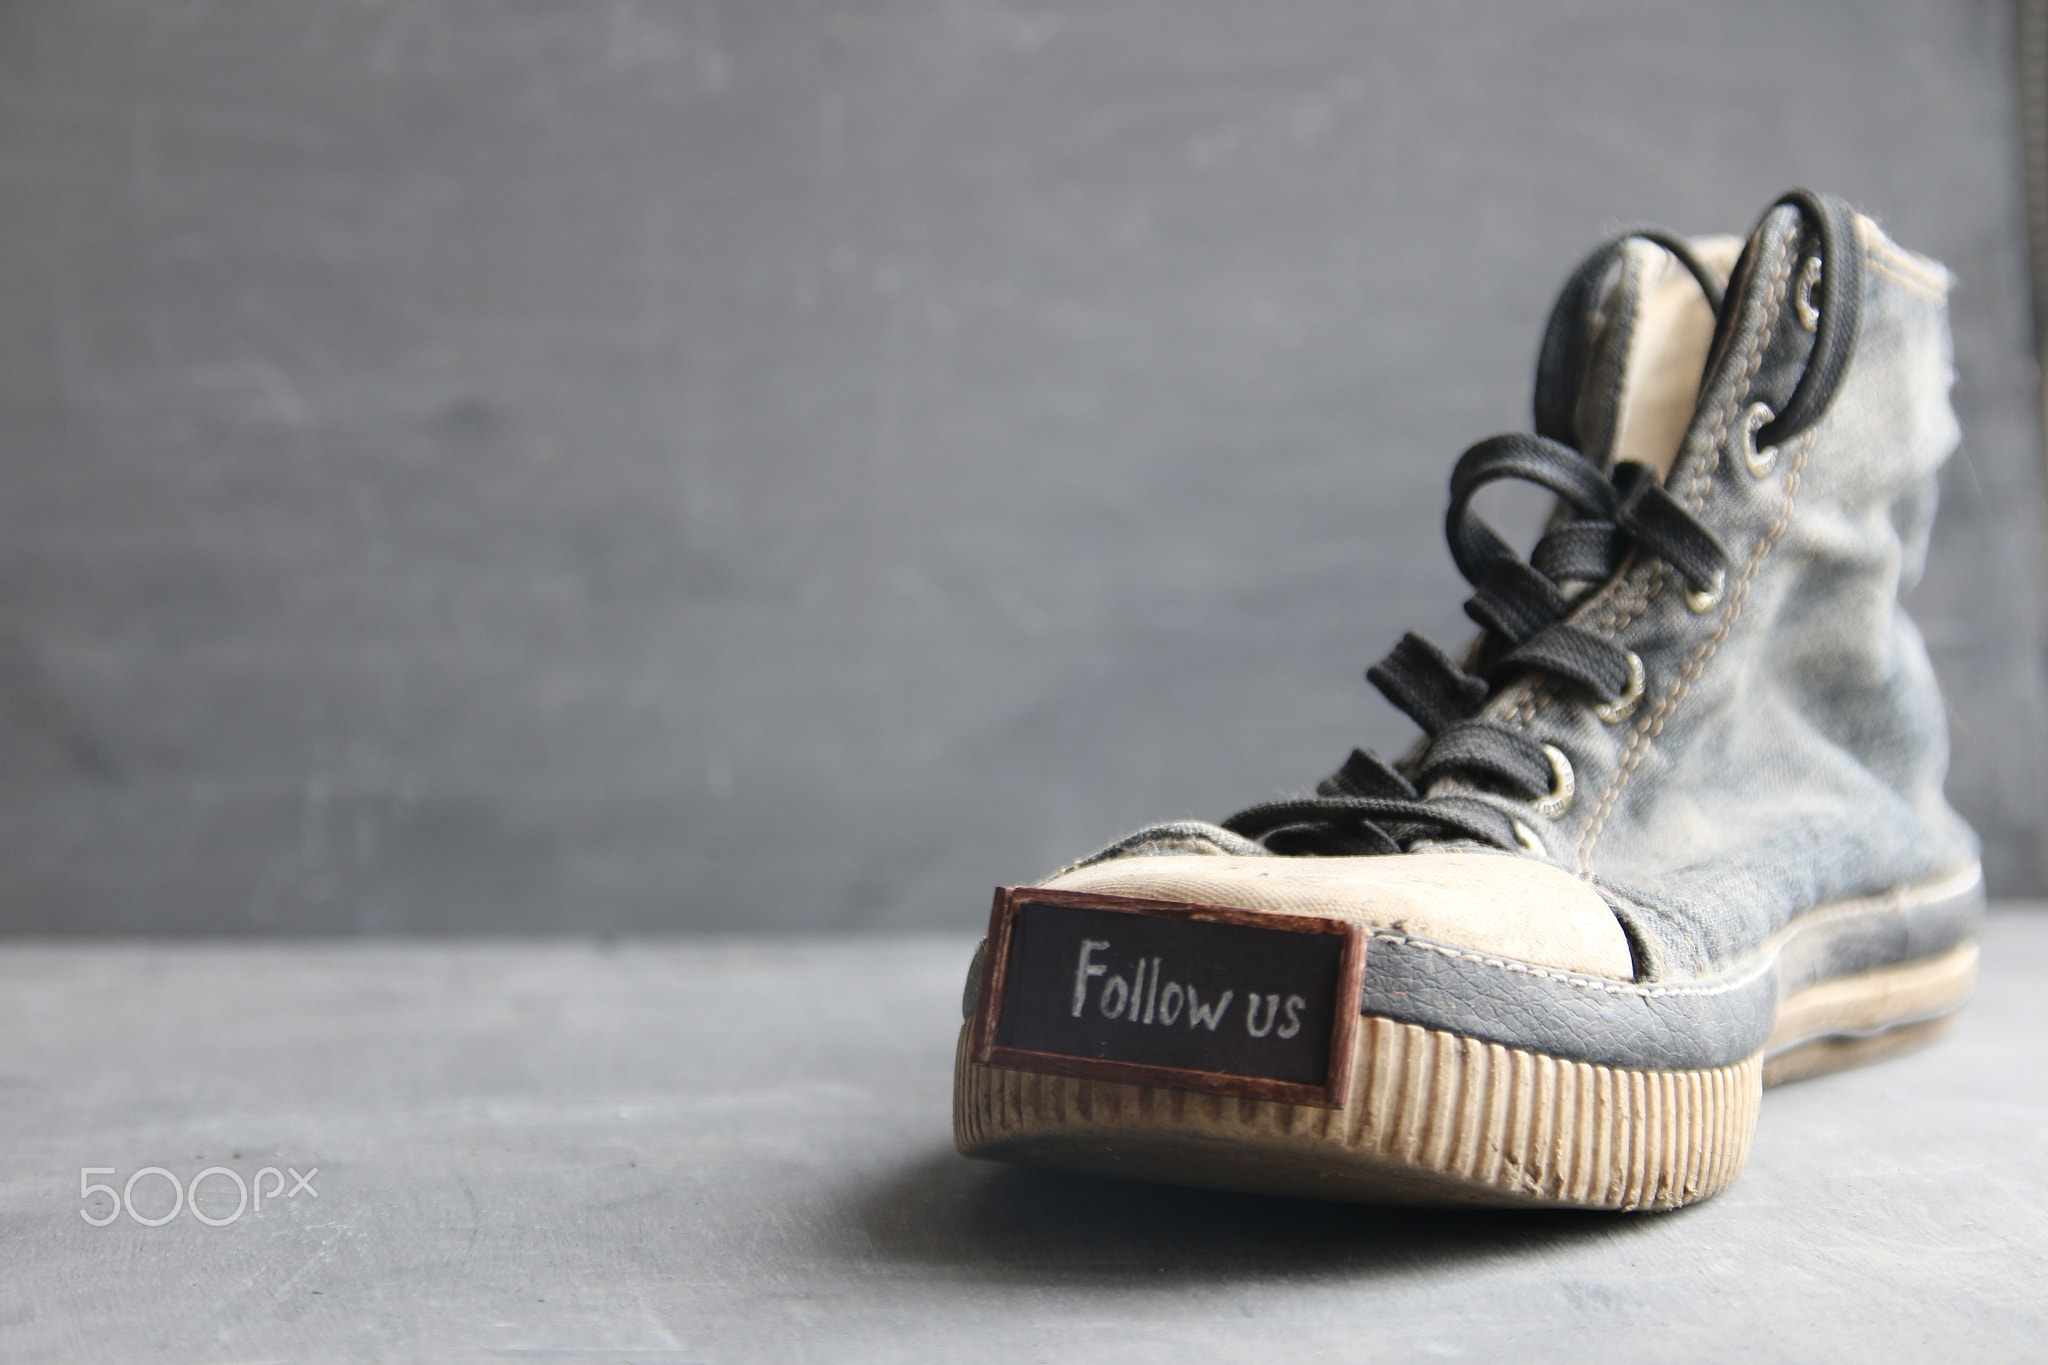 Follow us label for social networks and Vintage Sneakers